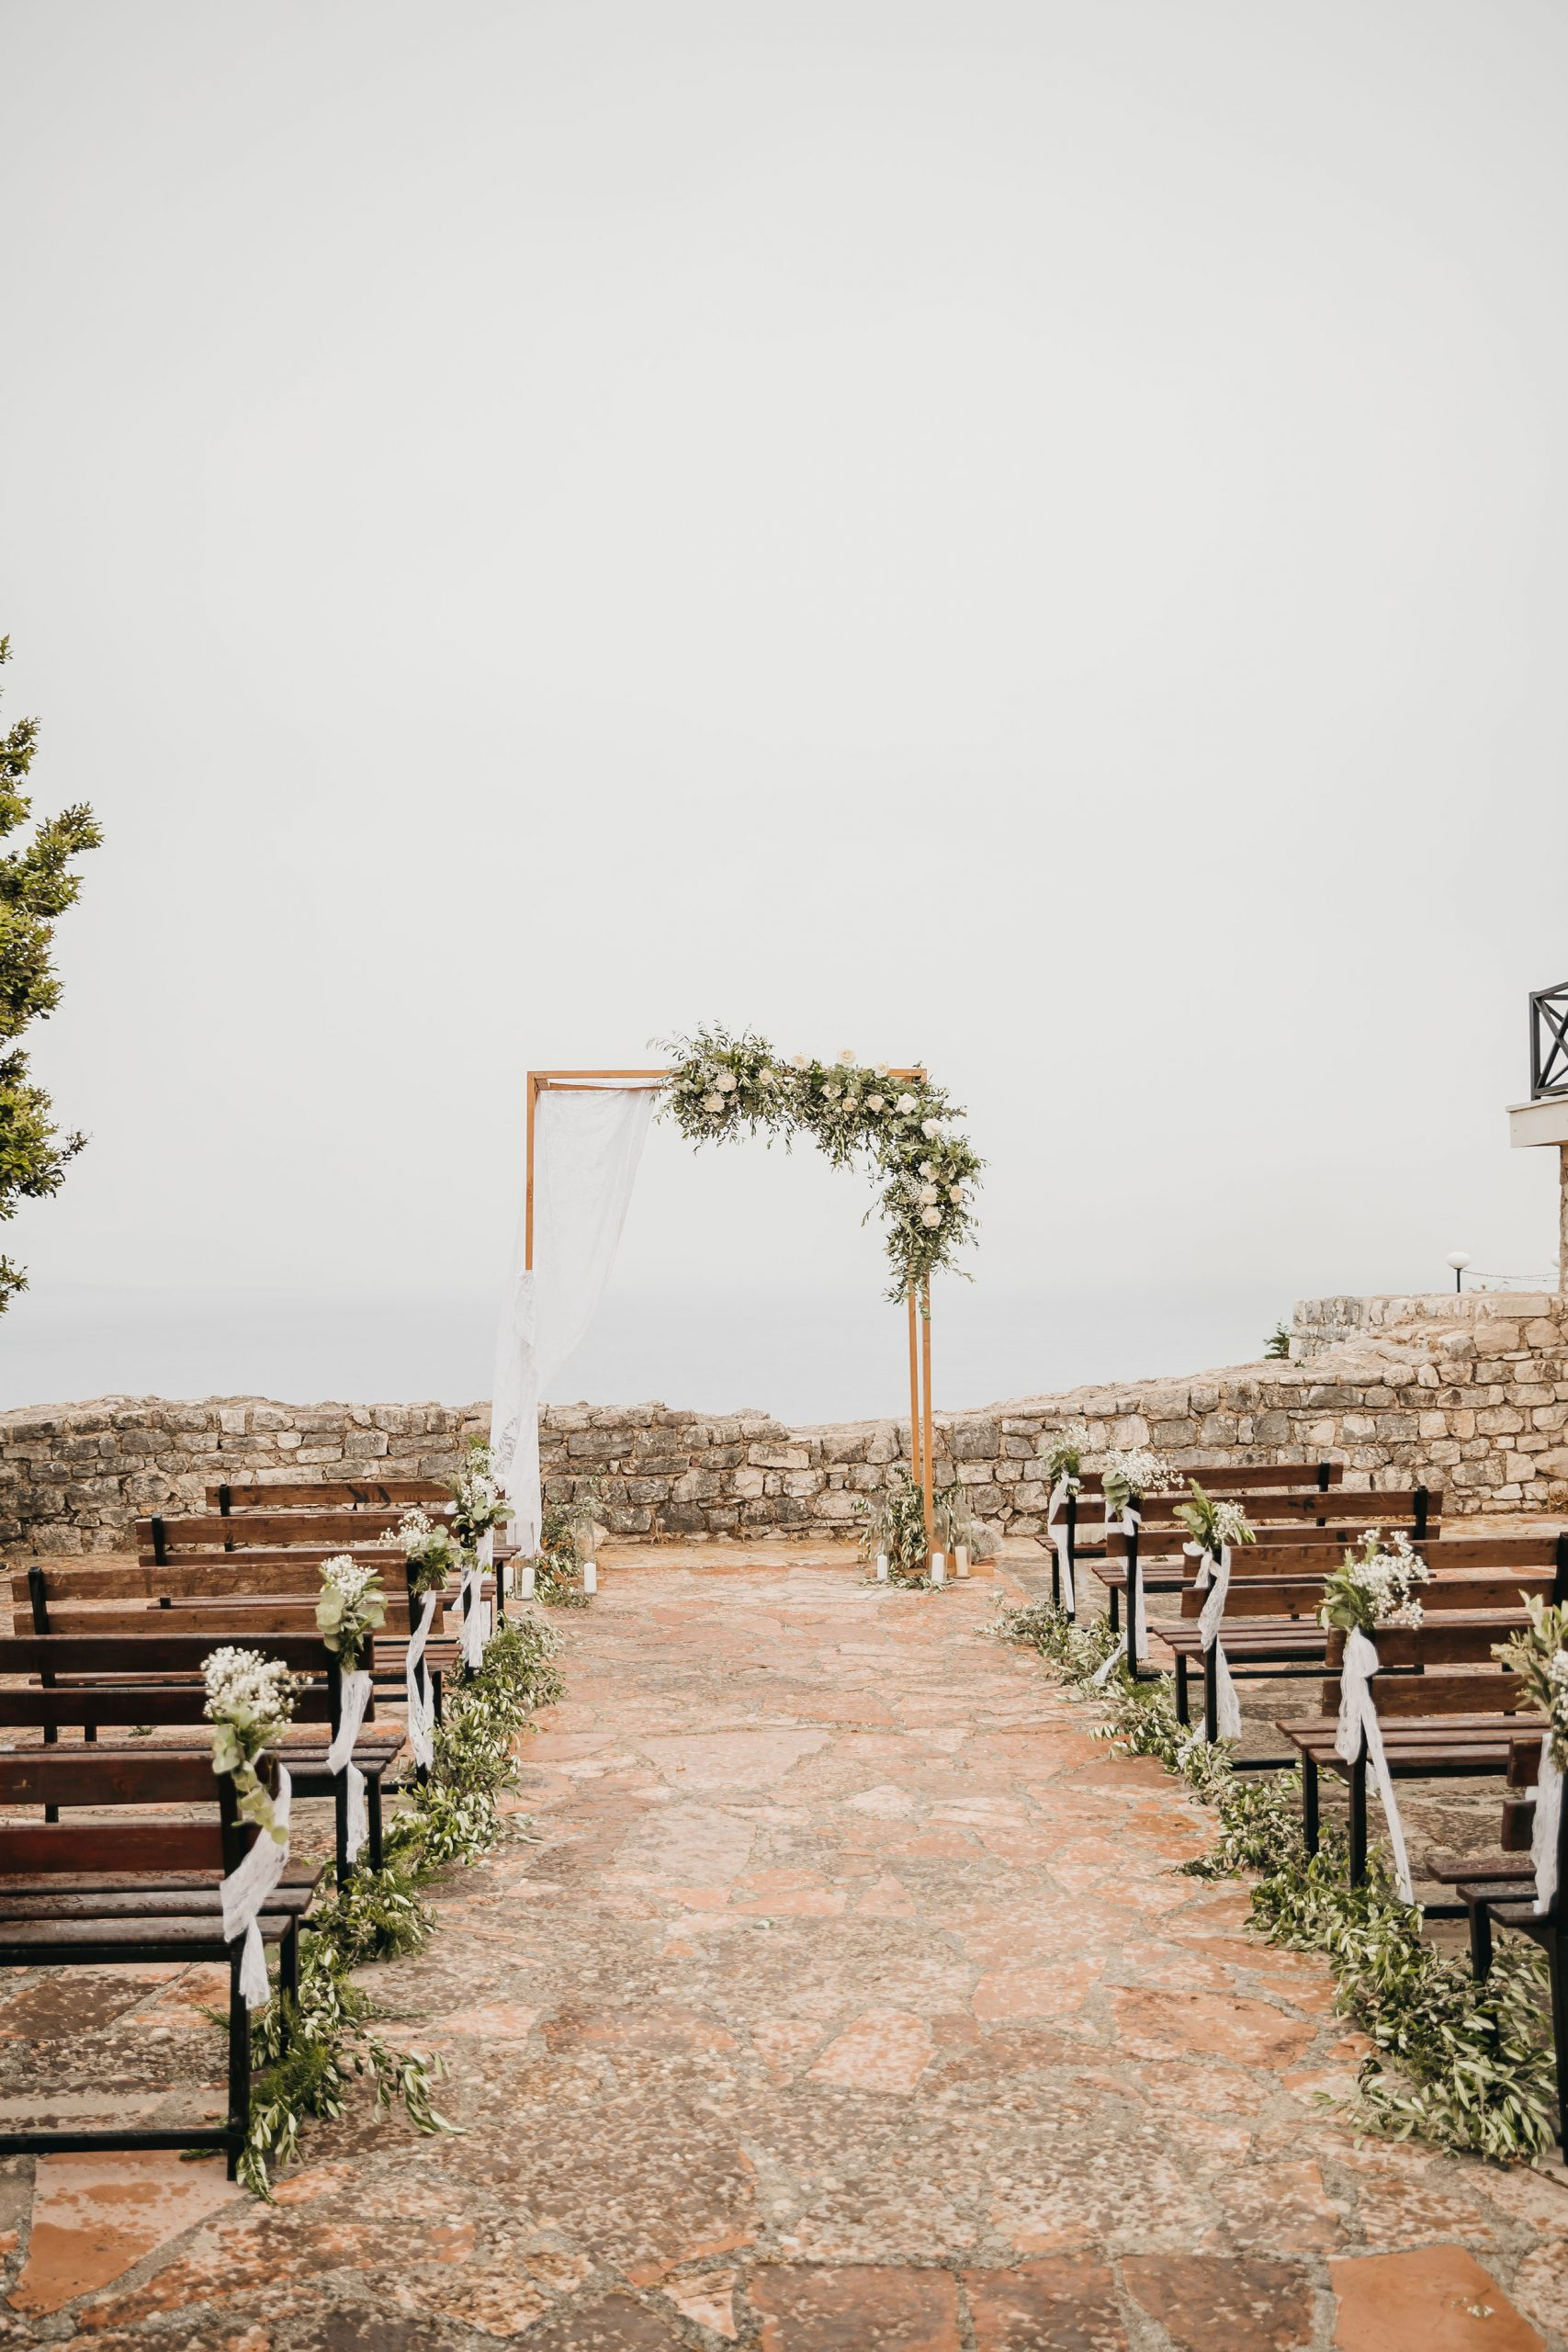 A small and intimate wedding ceremony